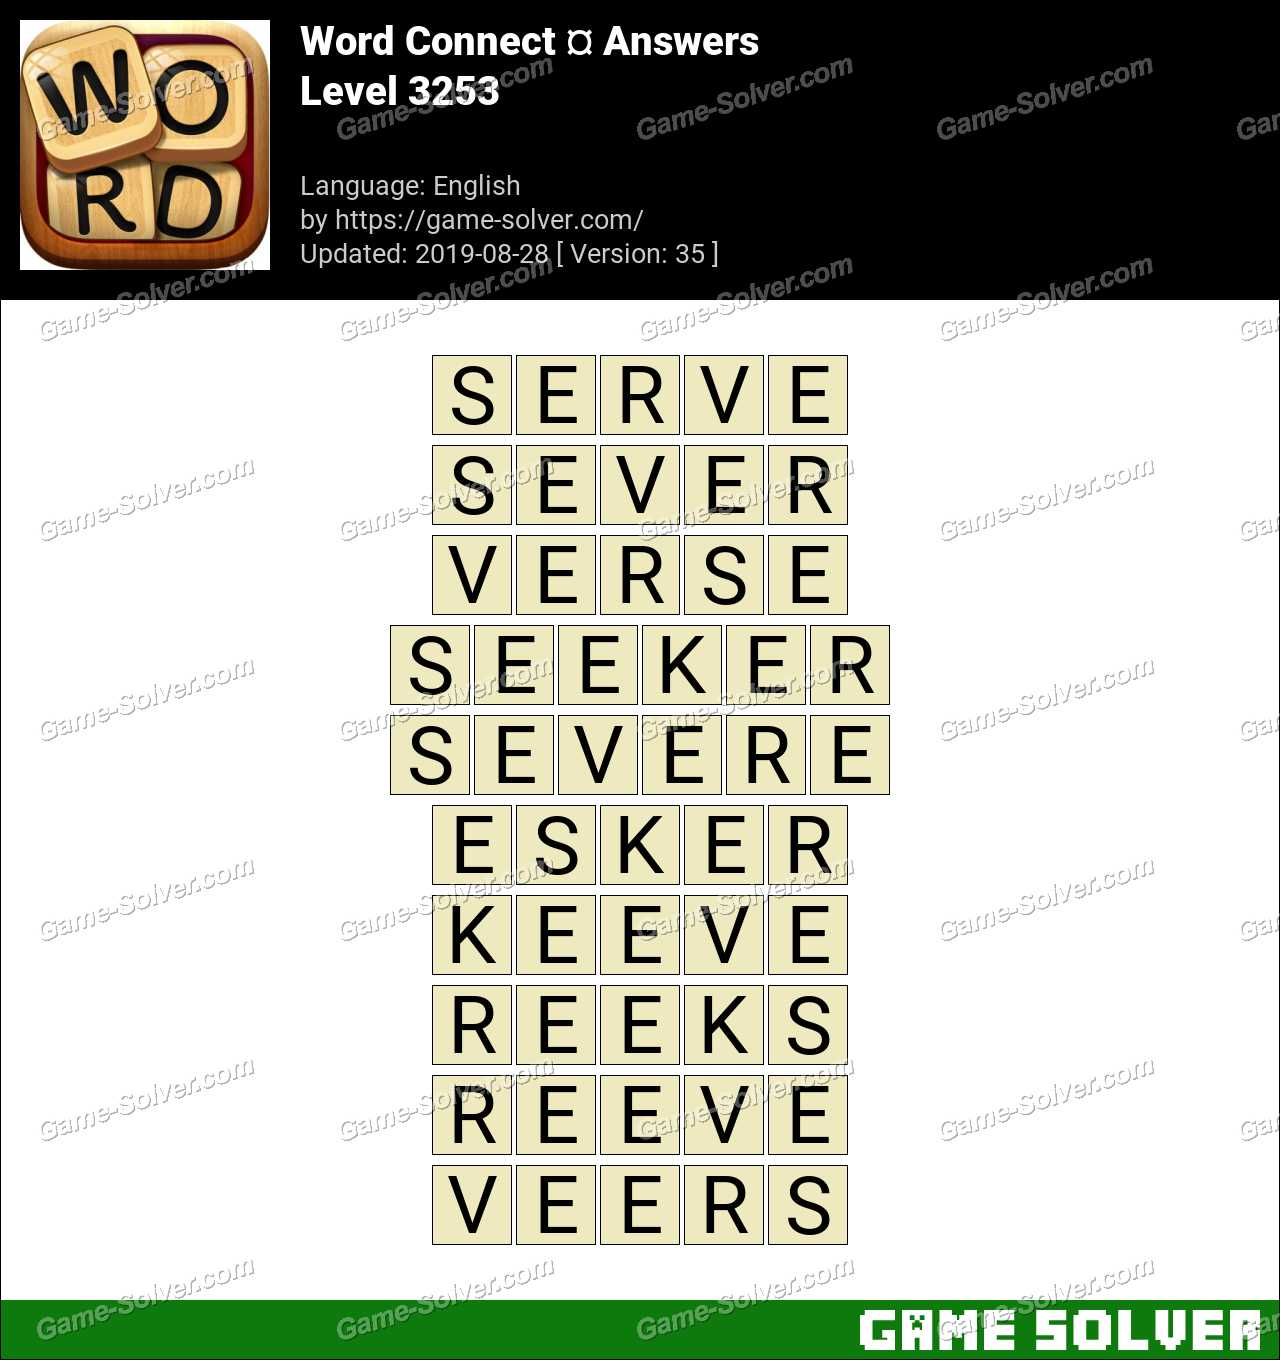 Word Connect Level 3253 Answers